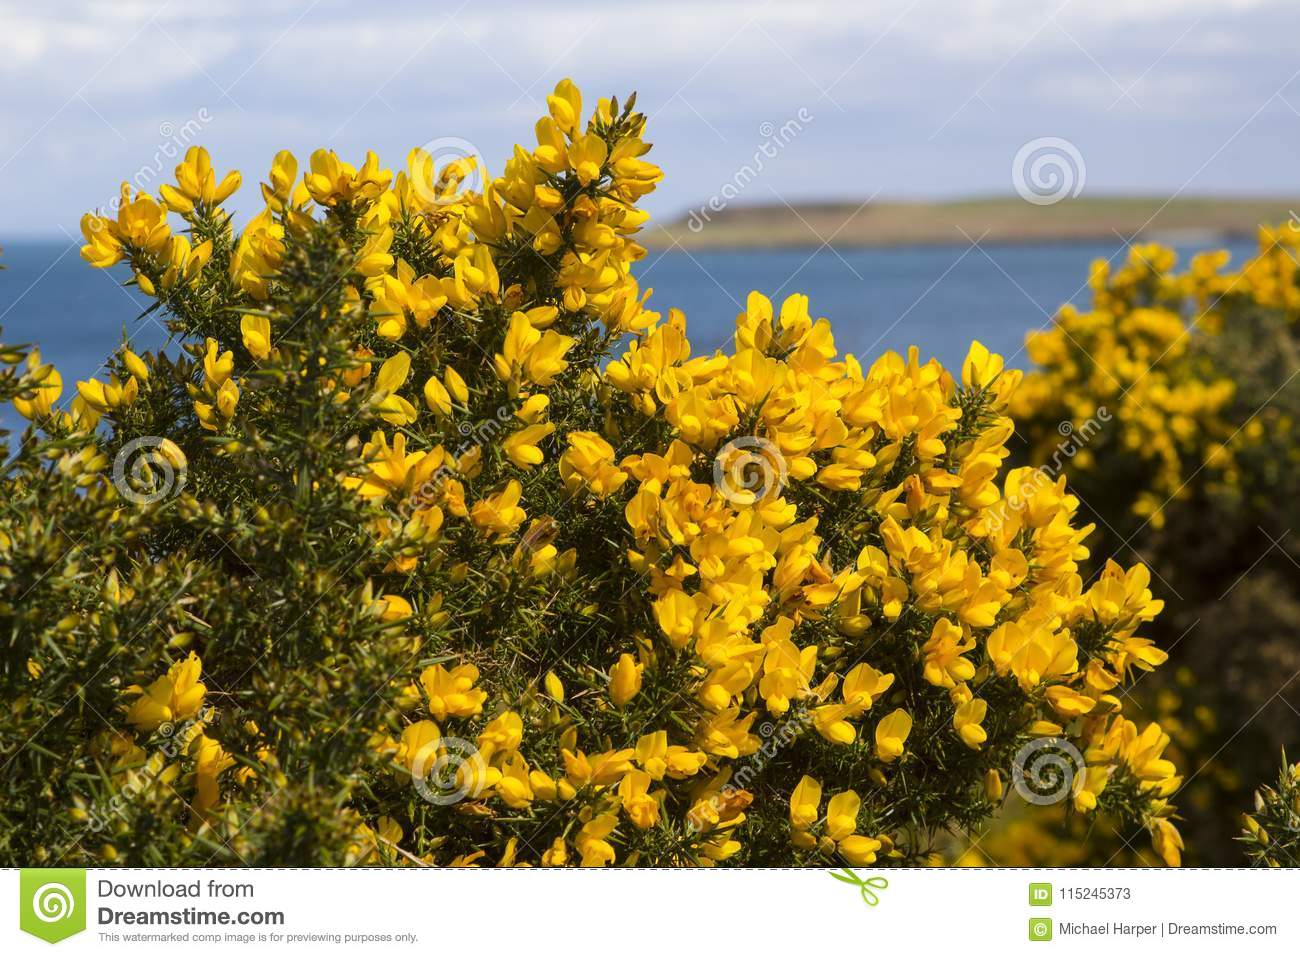 Yellow flowers on a common whin bush or gorse displaying their full download yellow flowers on a common whin bush or gorse displaying their full spring glory in mightylinksfo